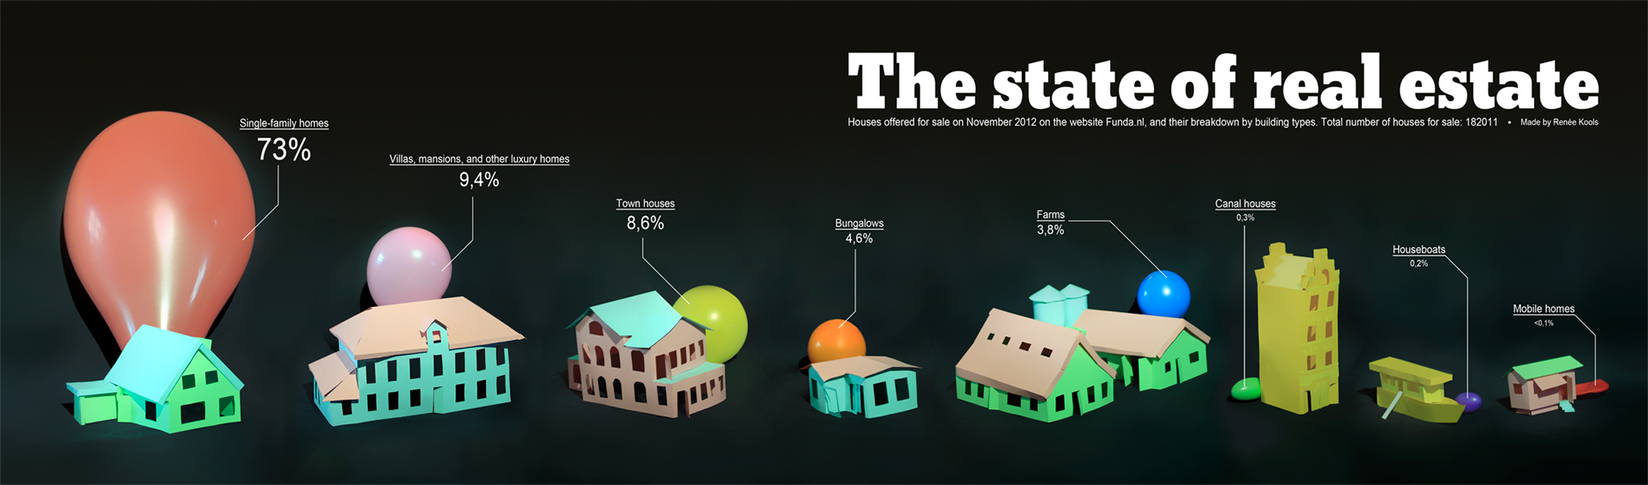 The state of real estate by Armonah